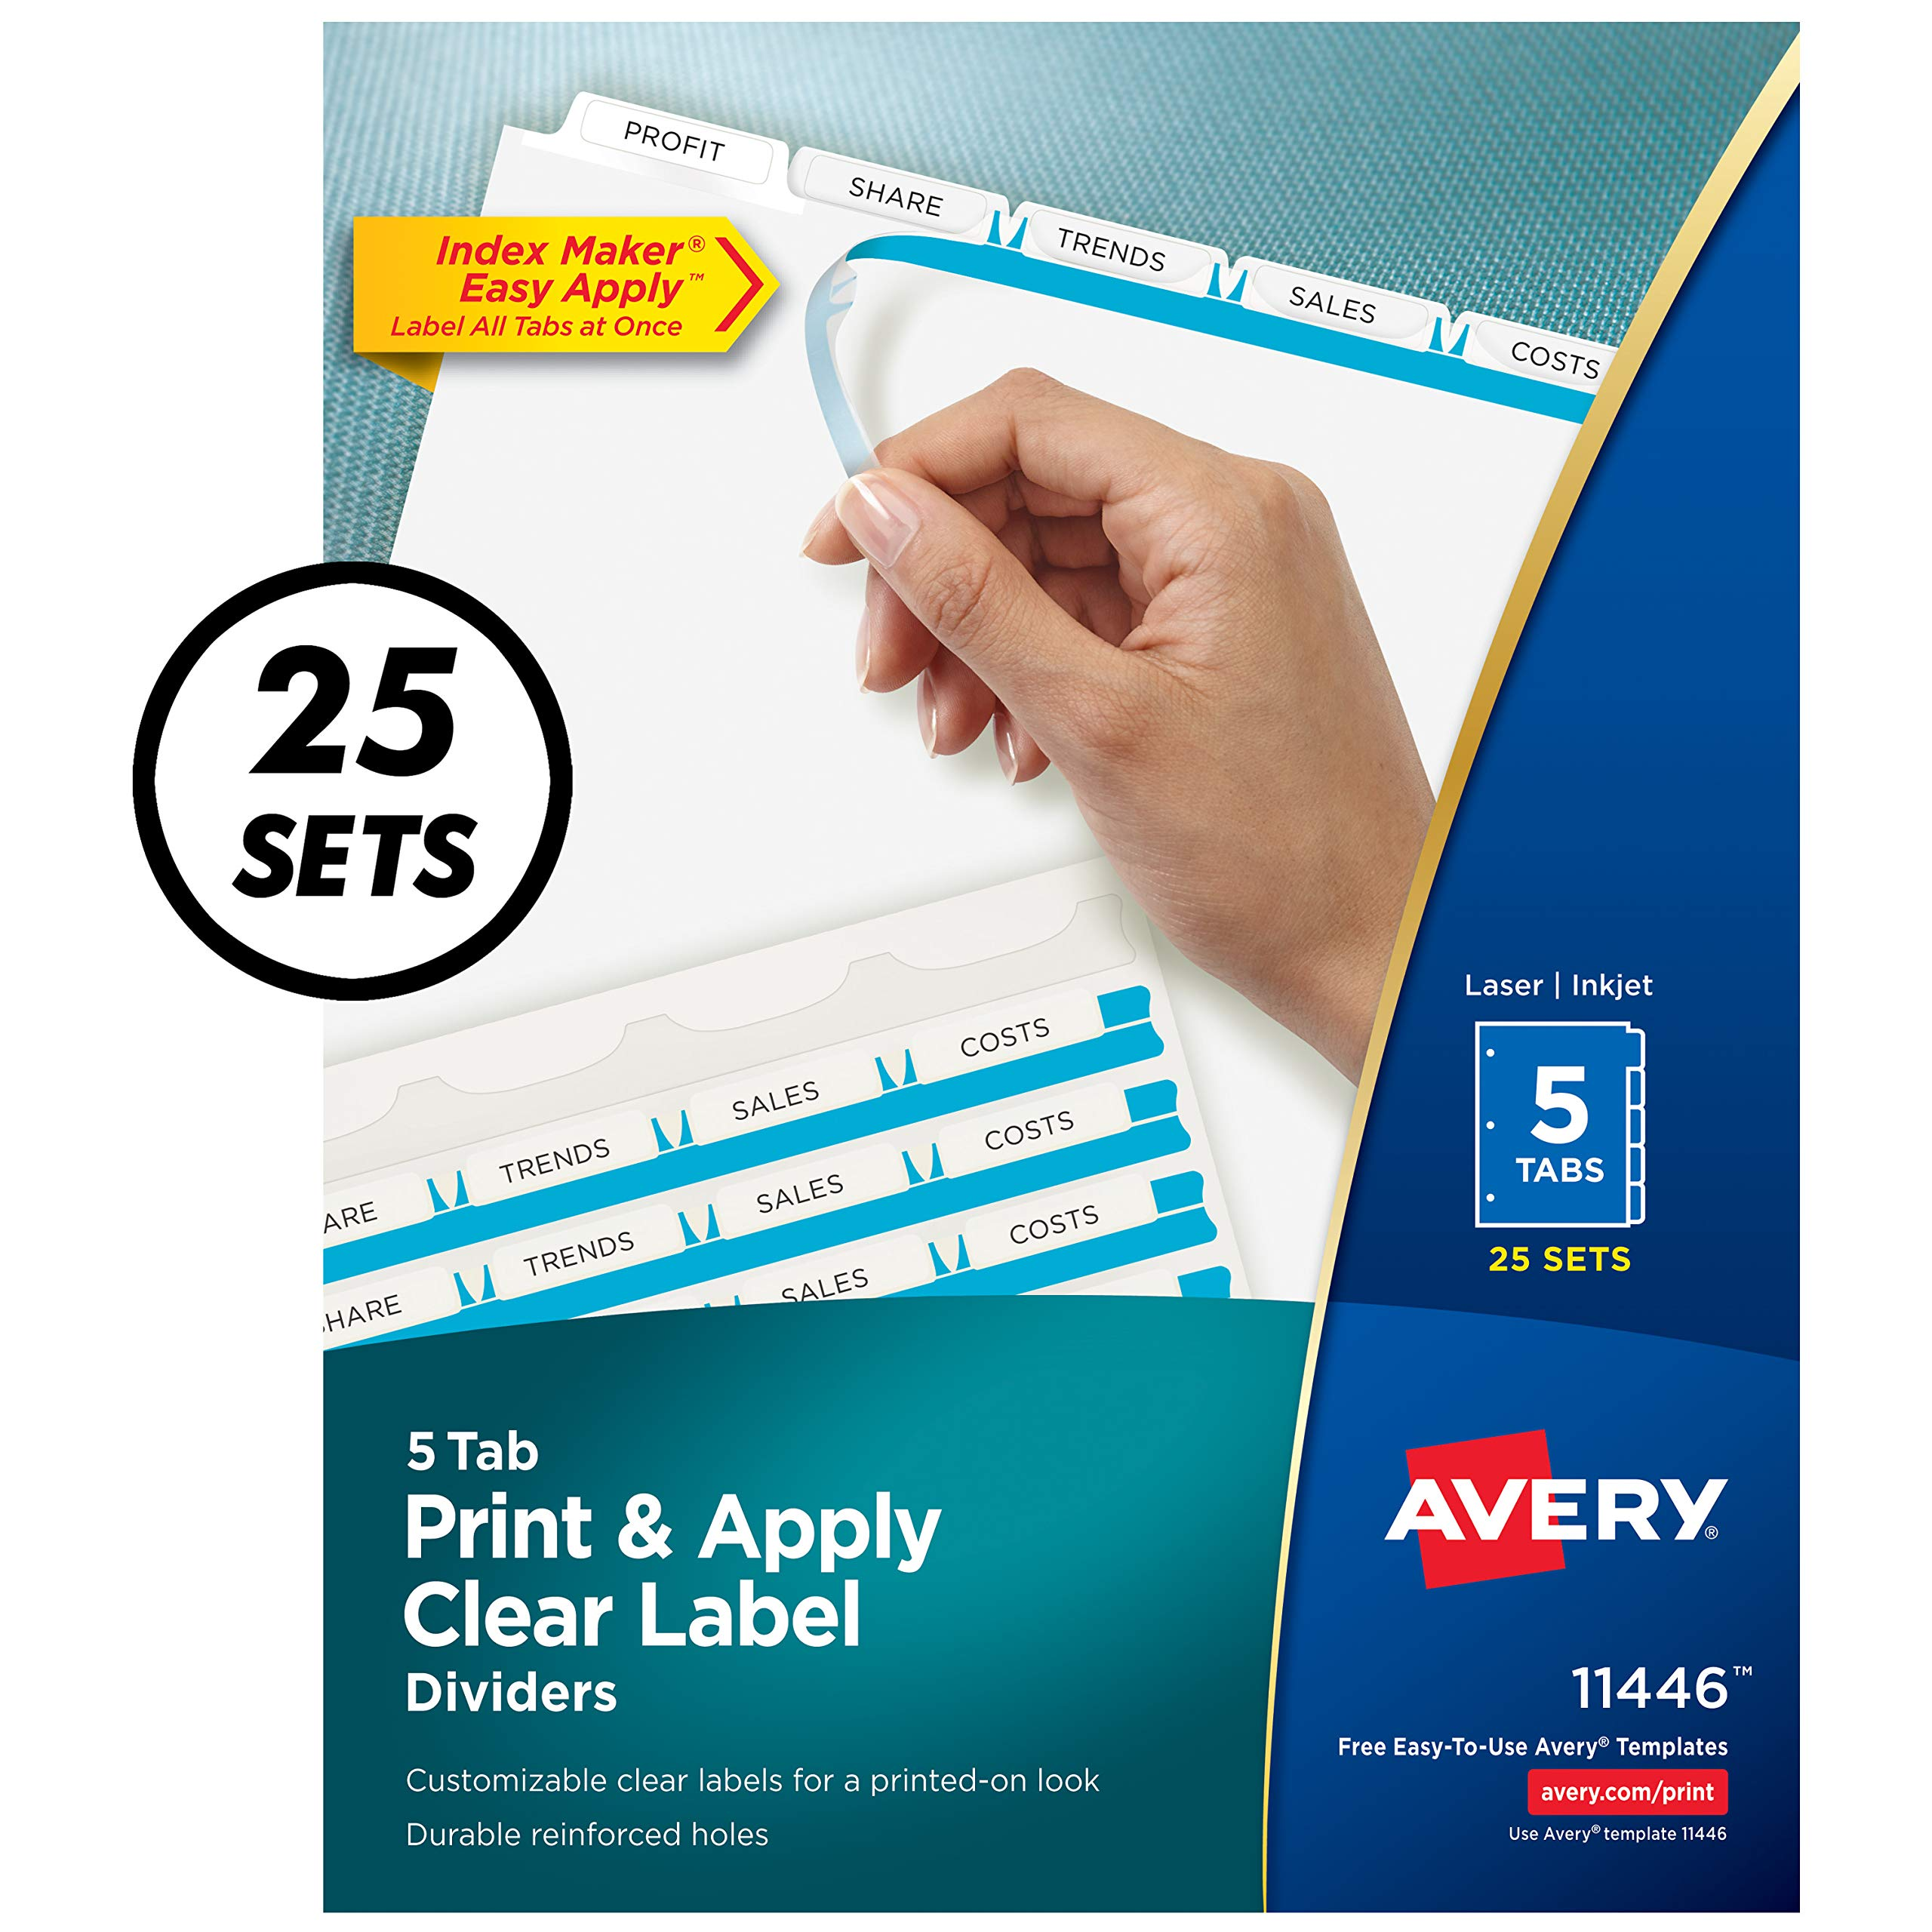 Avery 5-Tab Binder Dividers, Easy Print & Apply Clear Label Strip, Index Maker, White Tabs, 25 Sets (11446) by Avery